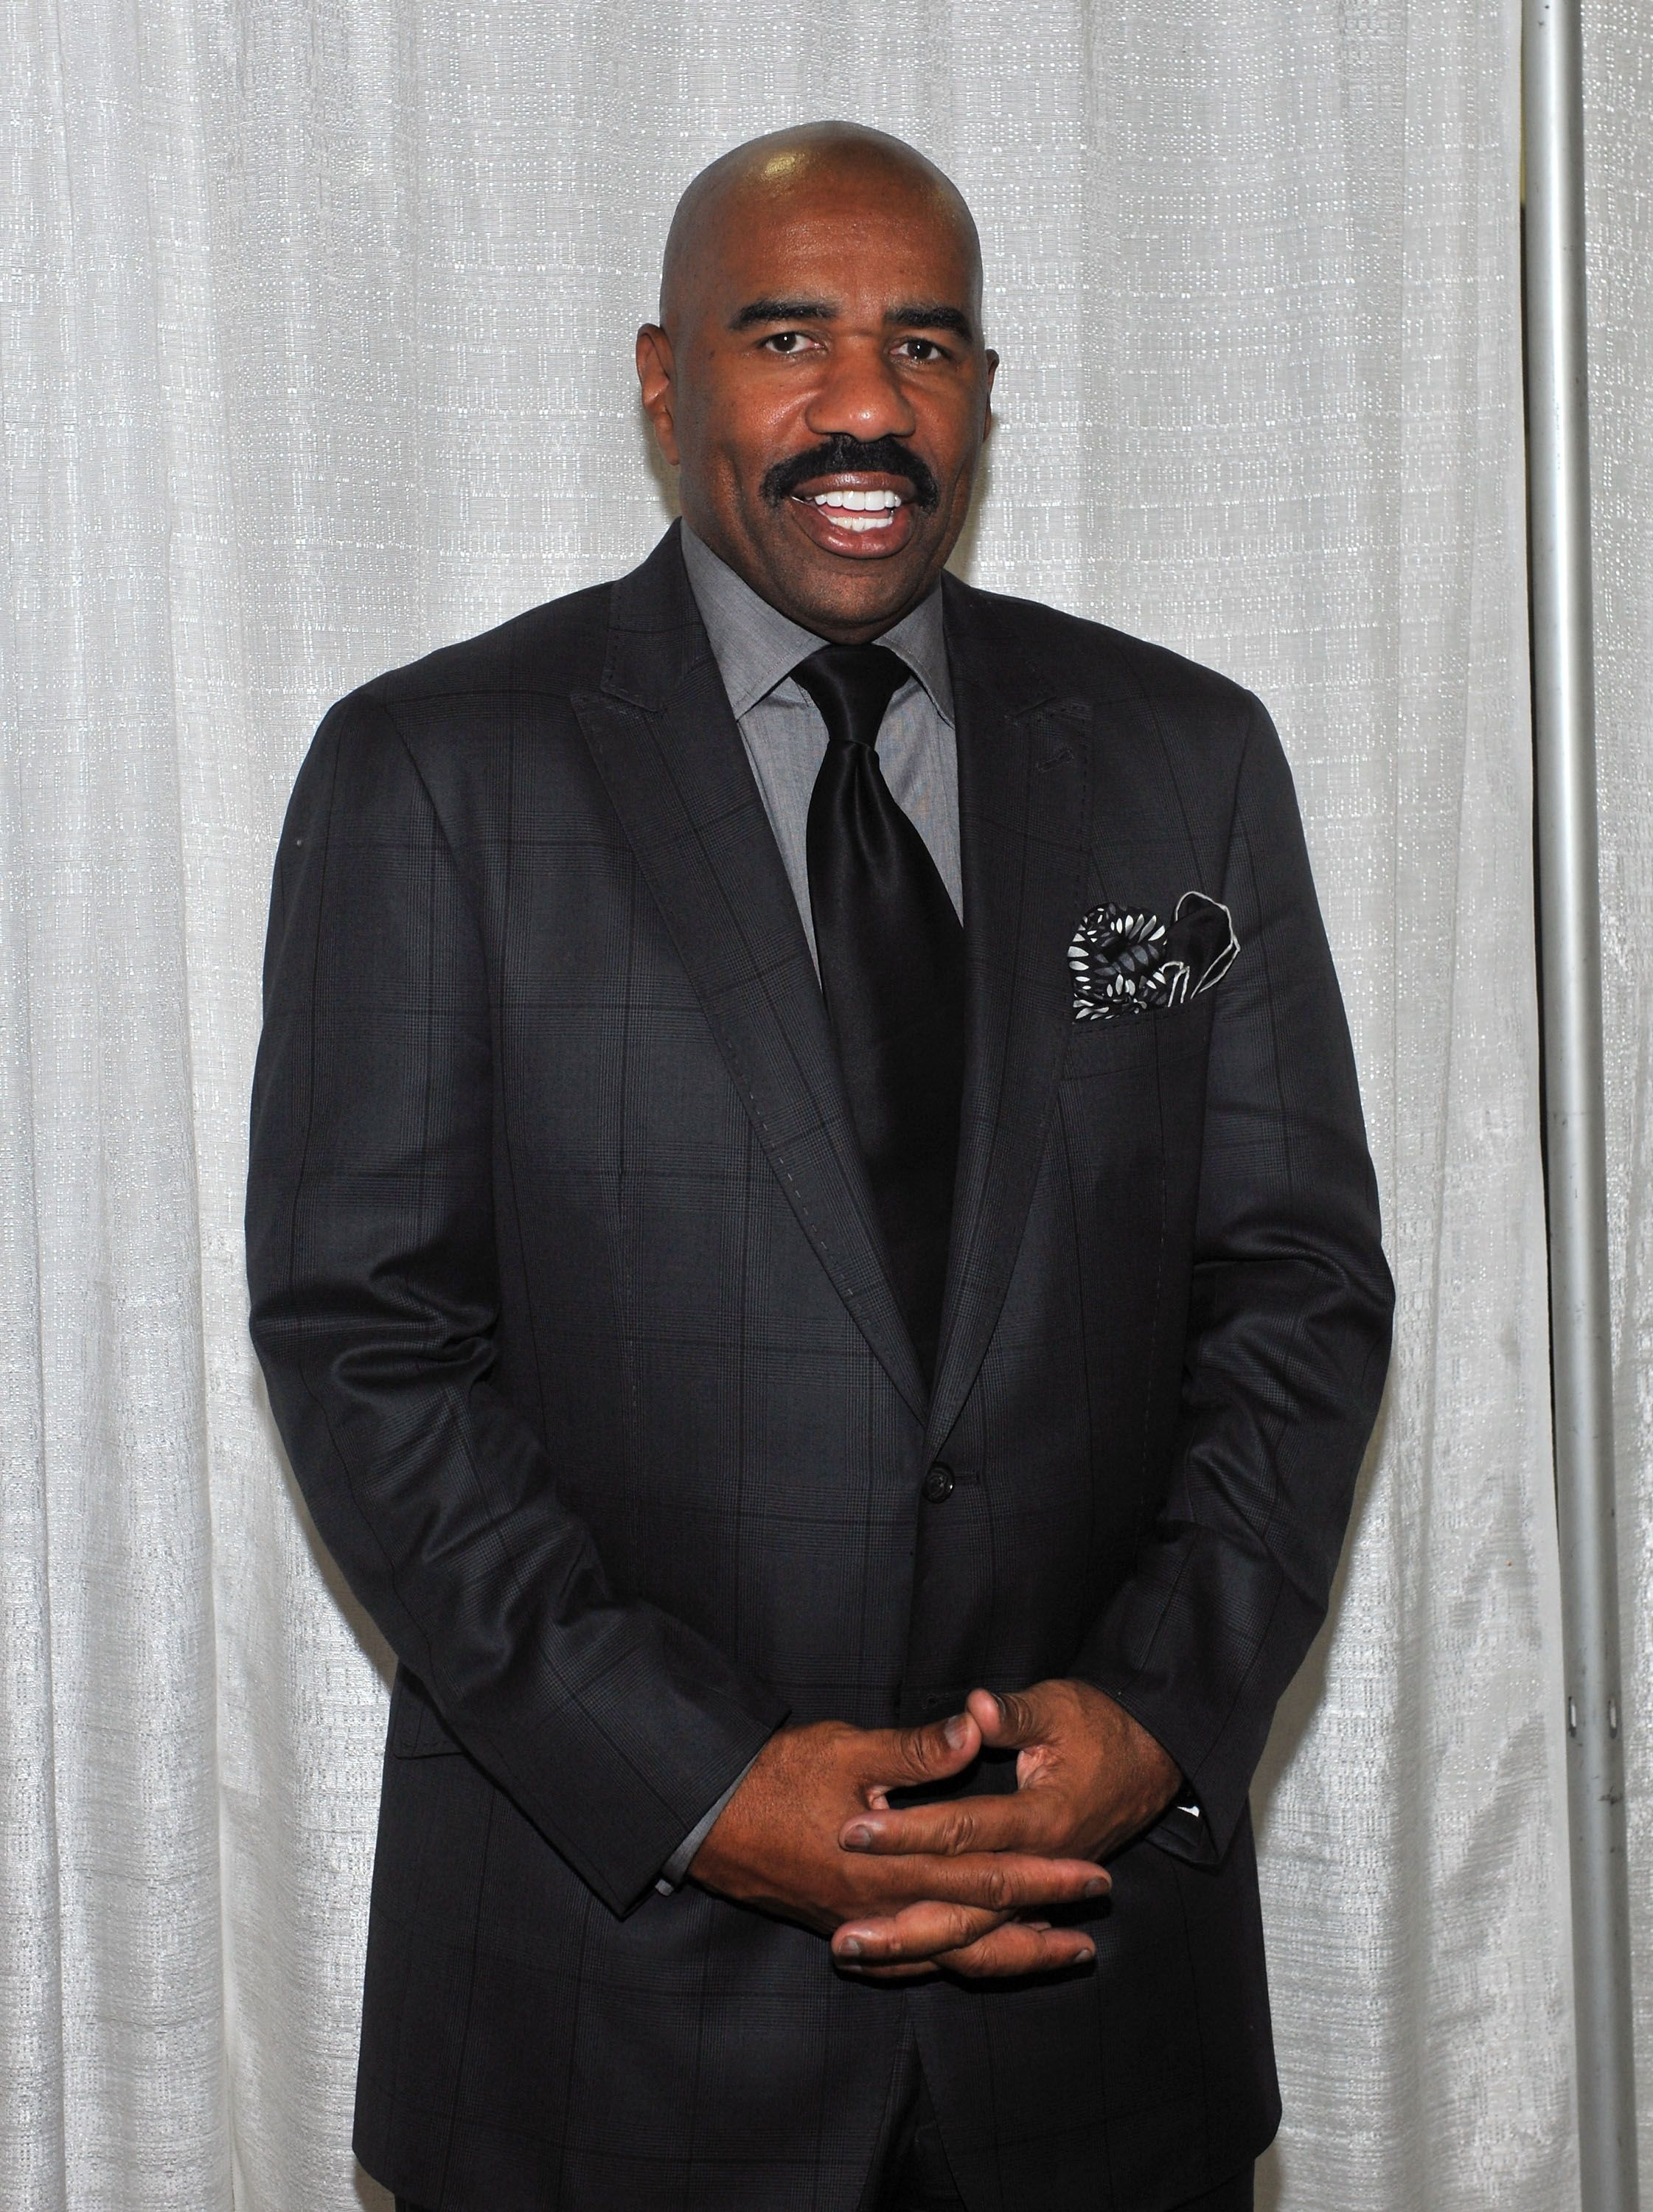 Steve Harvey at the Steve Harvey Mentoring Weekend on October 7, 2011 in New York. | Photo: Getty Images